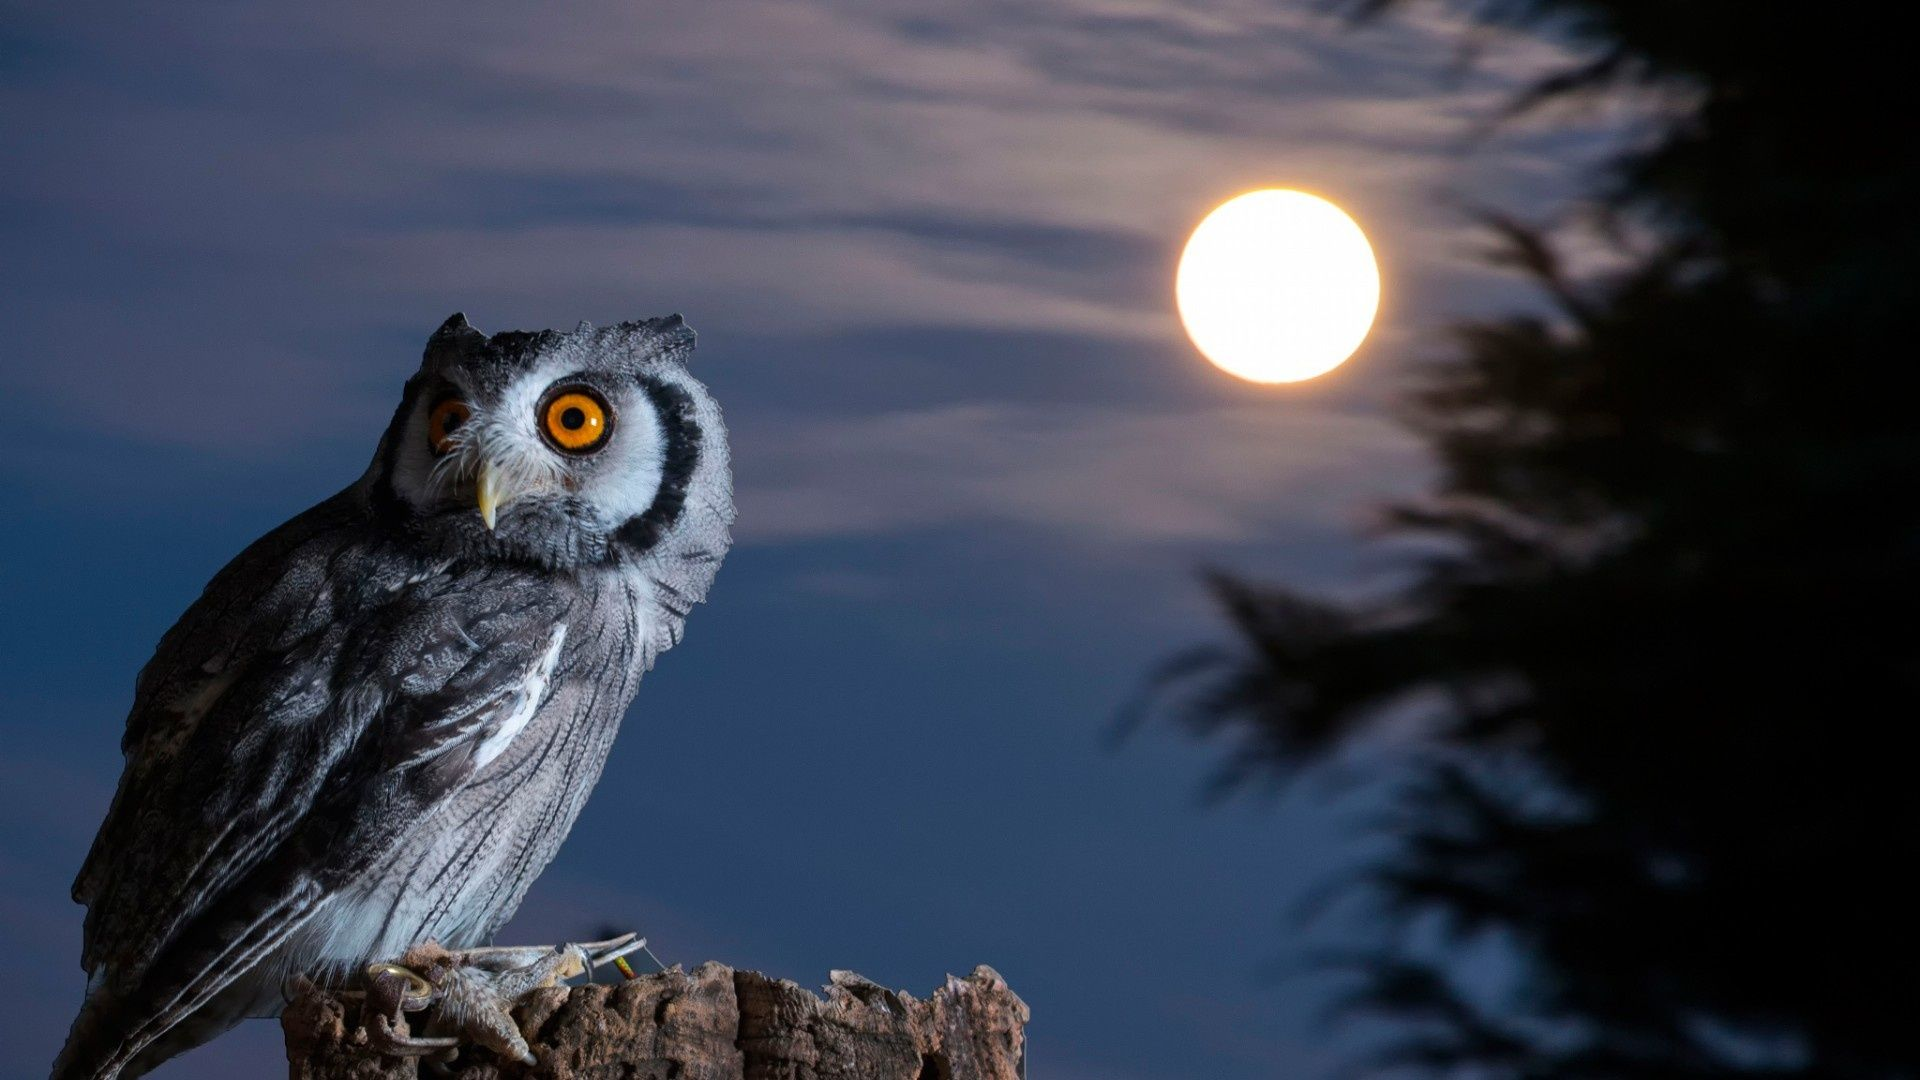 night owl moon hd wallpaper. | steak | pinterest | owl moon and owl